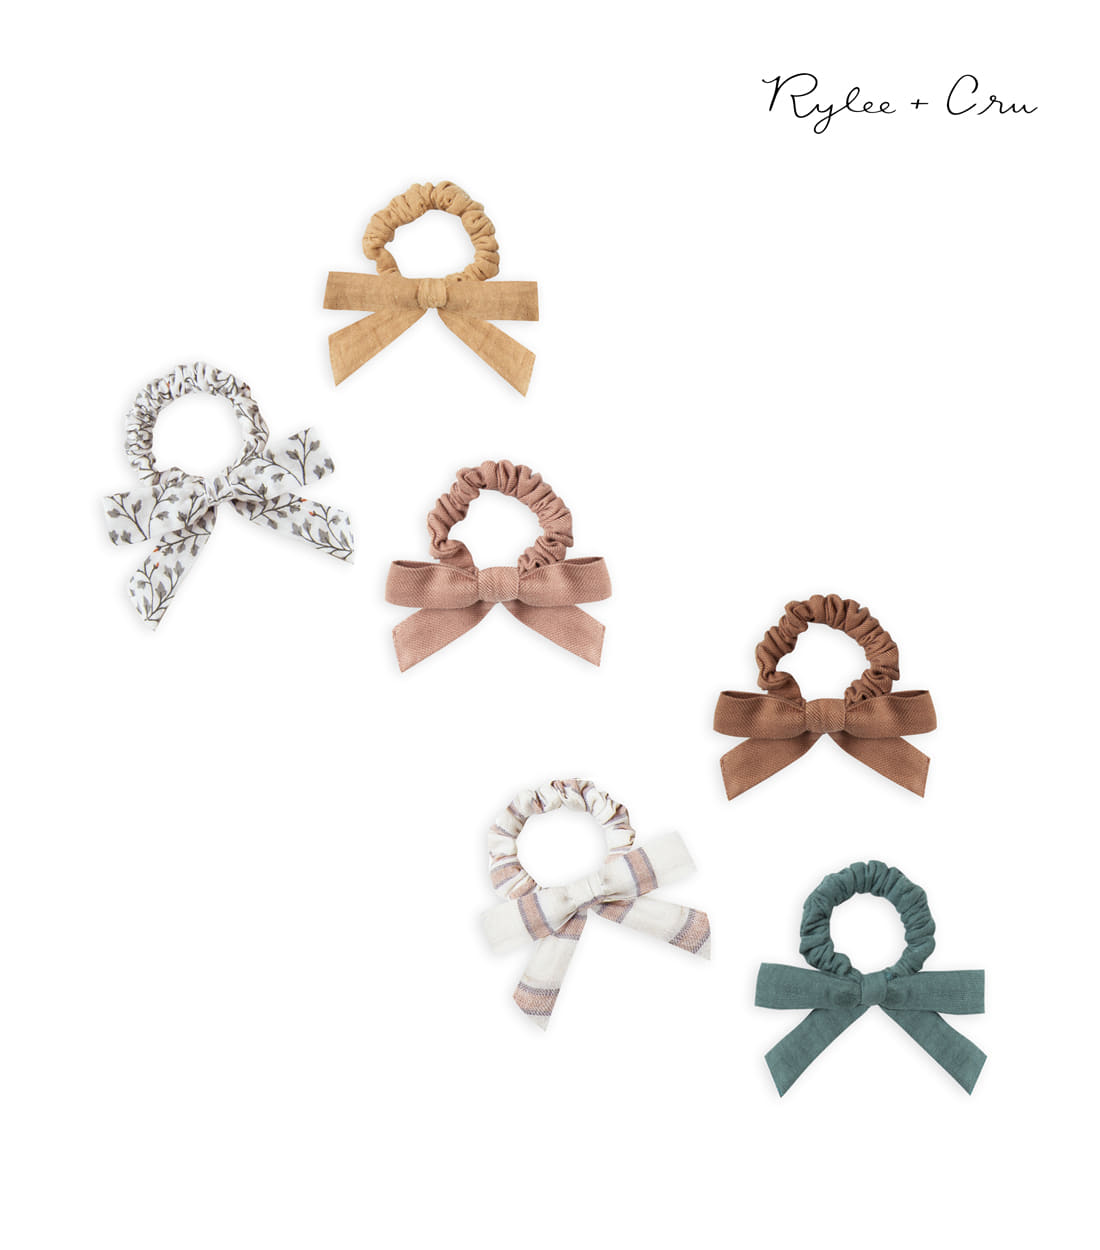 라일리앤크루 LITTLE BOW SCRUNCHIE SET